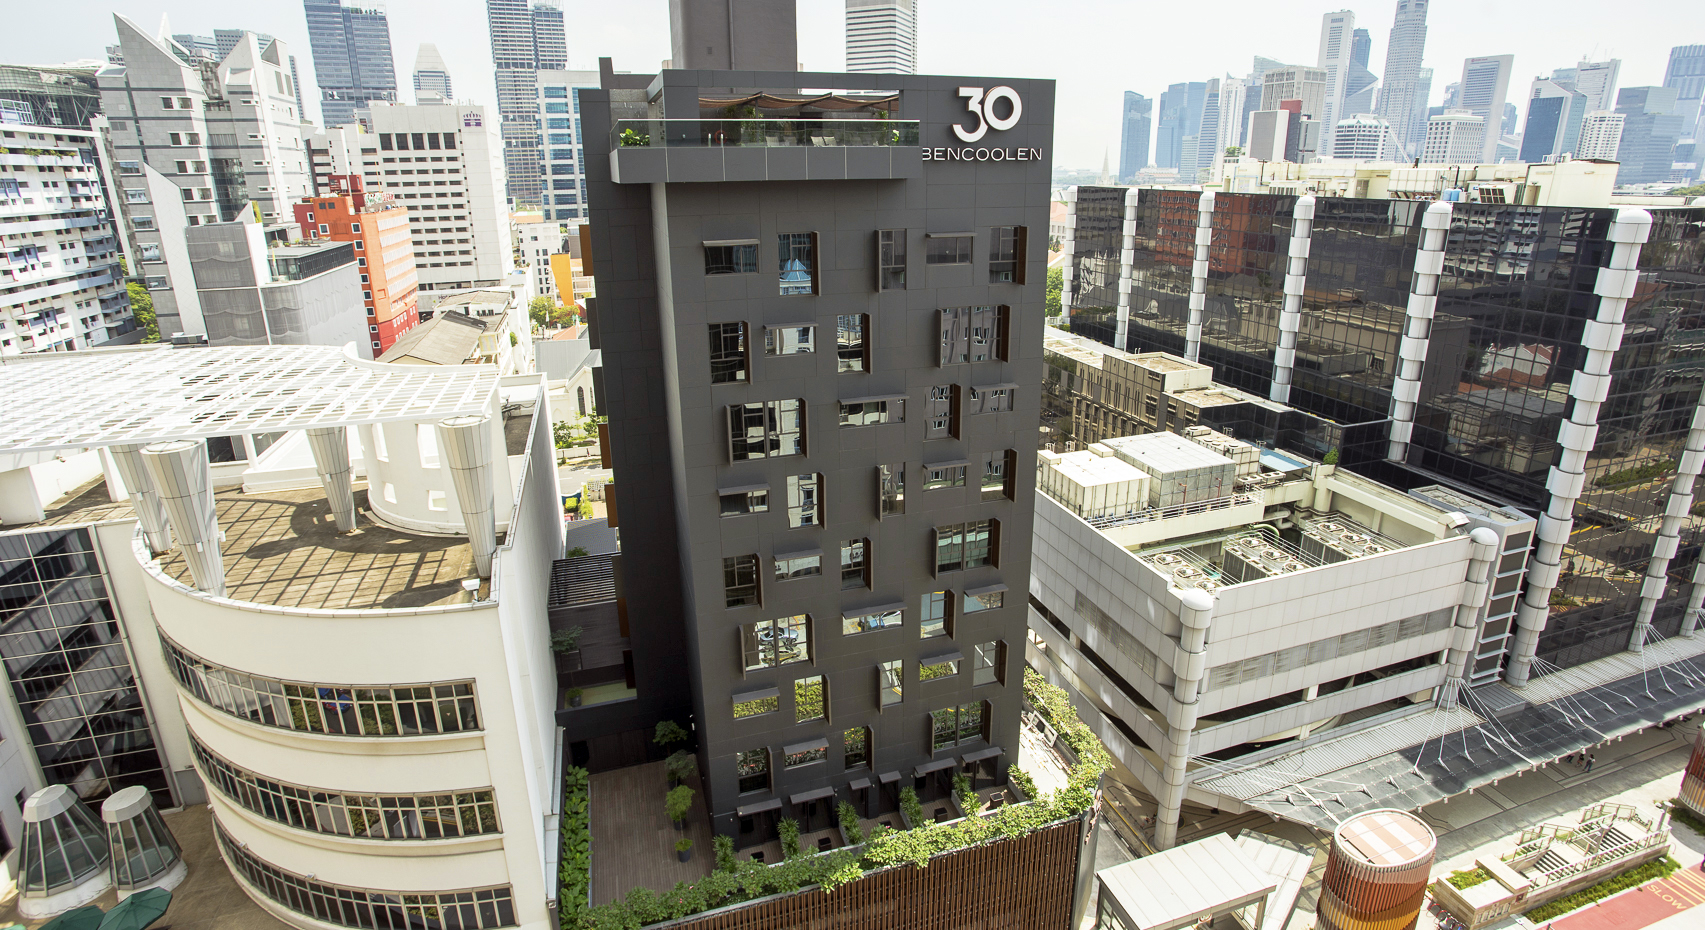 30 Bencoolen - Singapore's First Hotel with Smart In-room Solution Systems